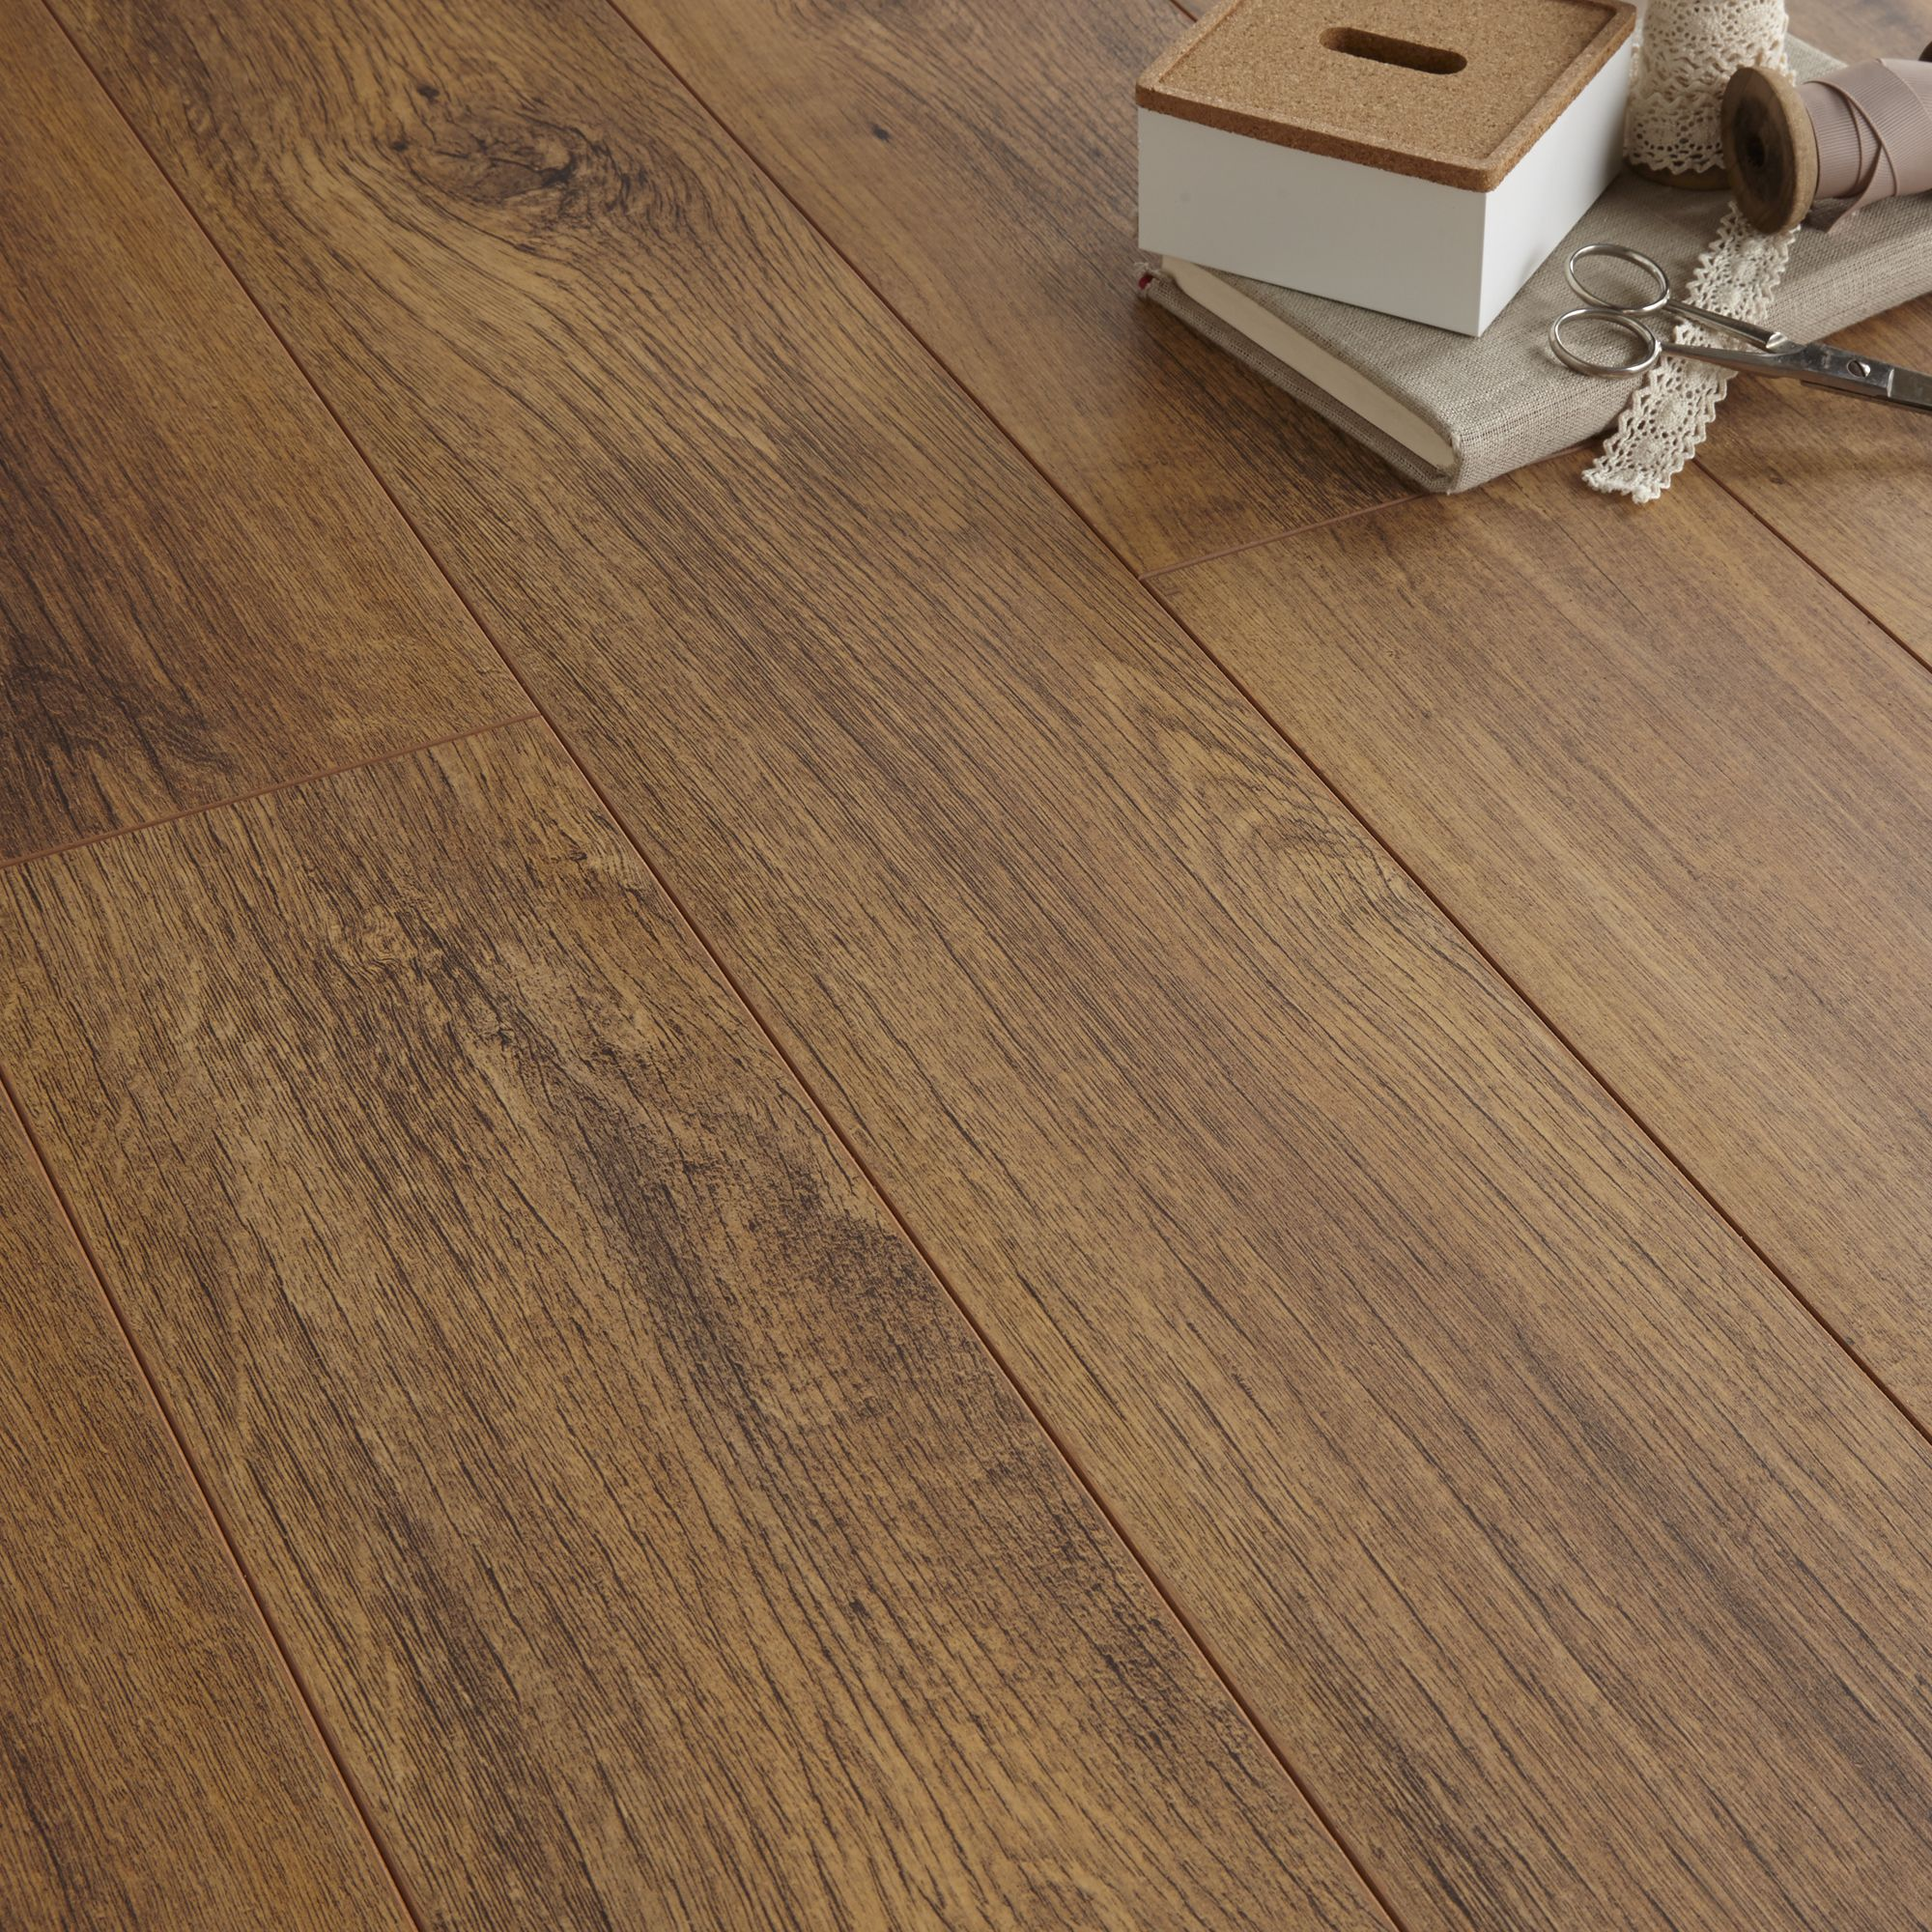 Arpeggio Tuscany olive effect 2 strip laminate flooring